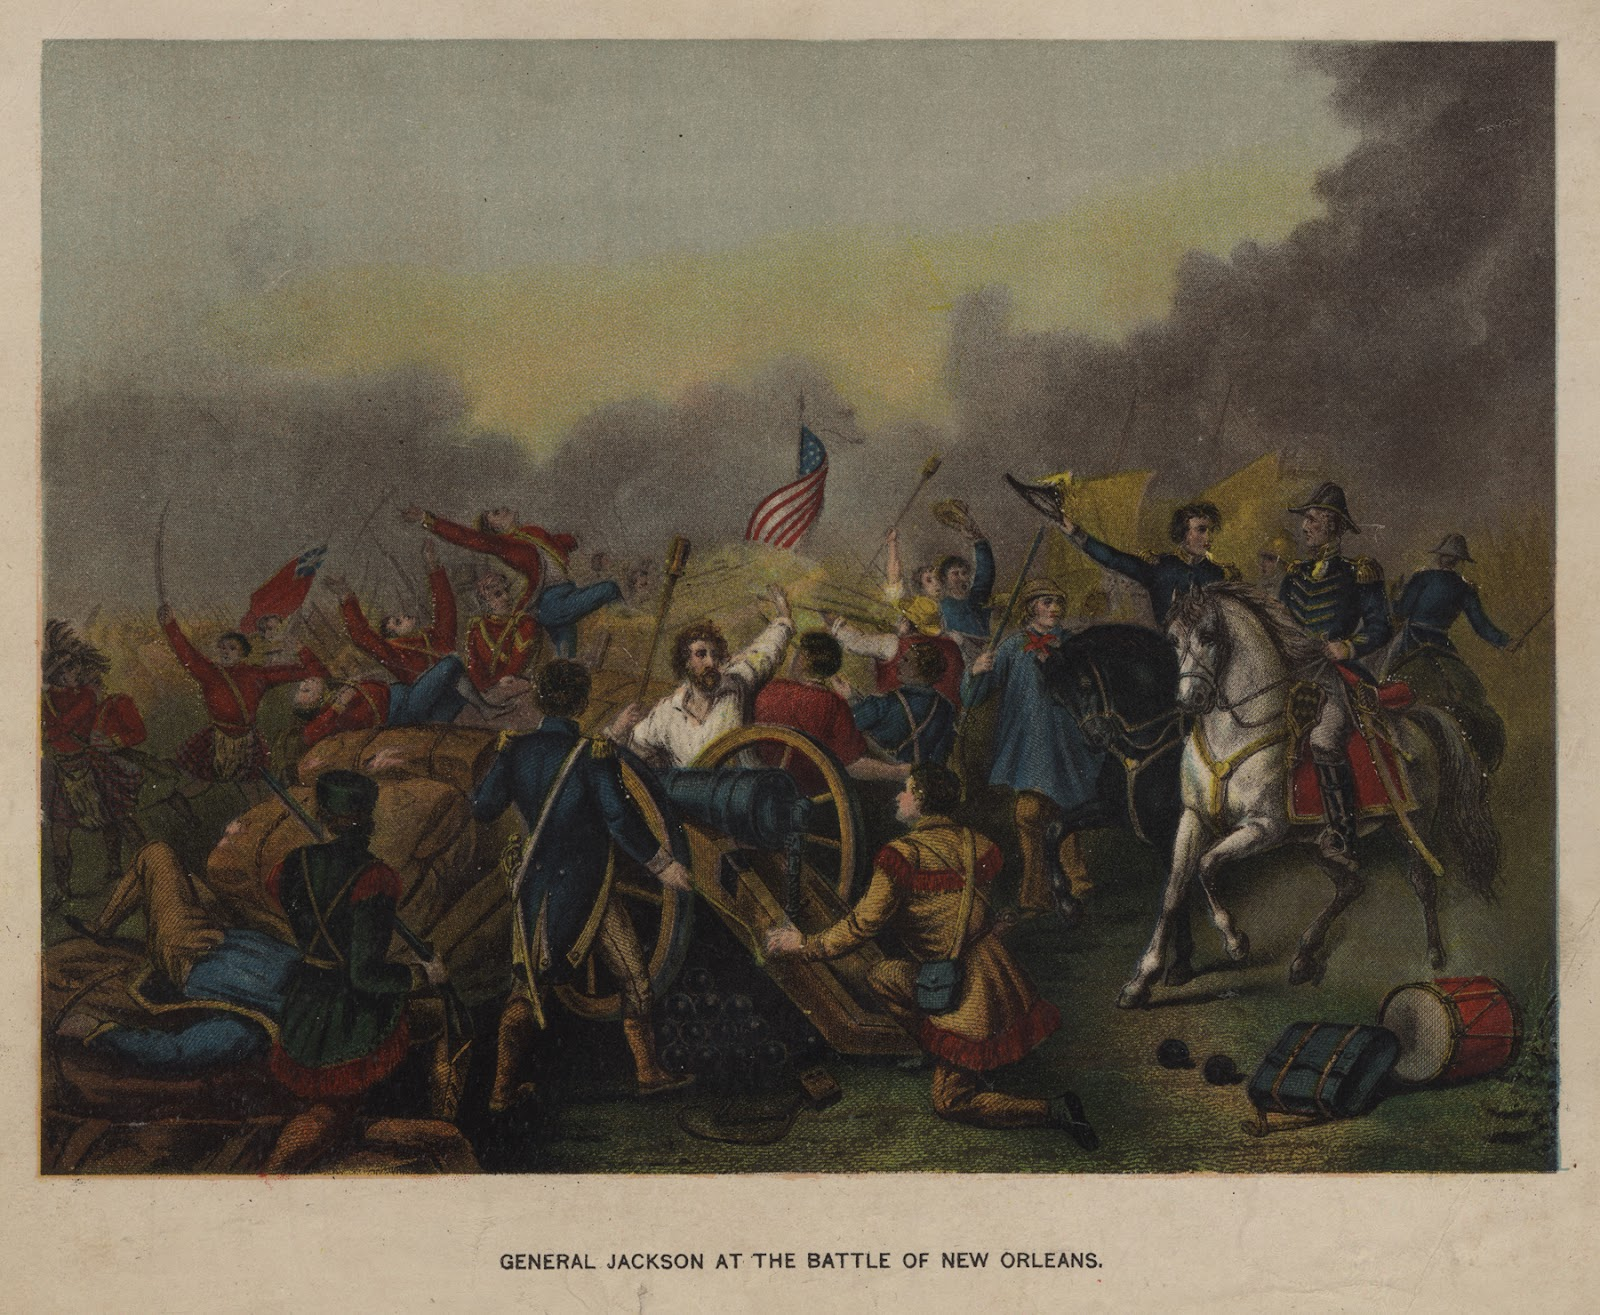 the war of 1812 War of 1812 introduction a second war for independence began just 29 years after the end of the revolutionary war, the war of 1812 named after one year of a war that lasted three, the war.